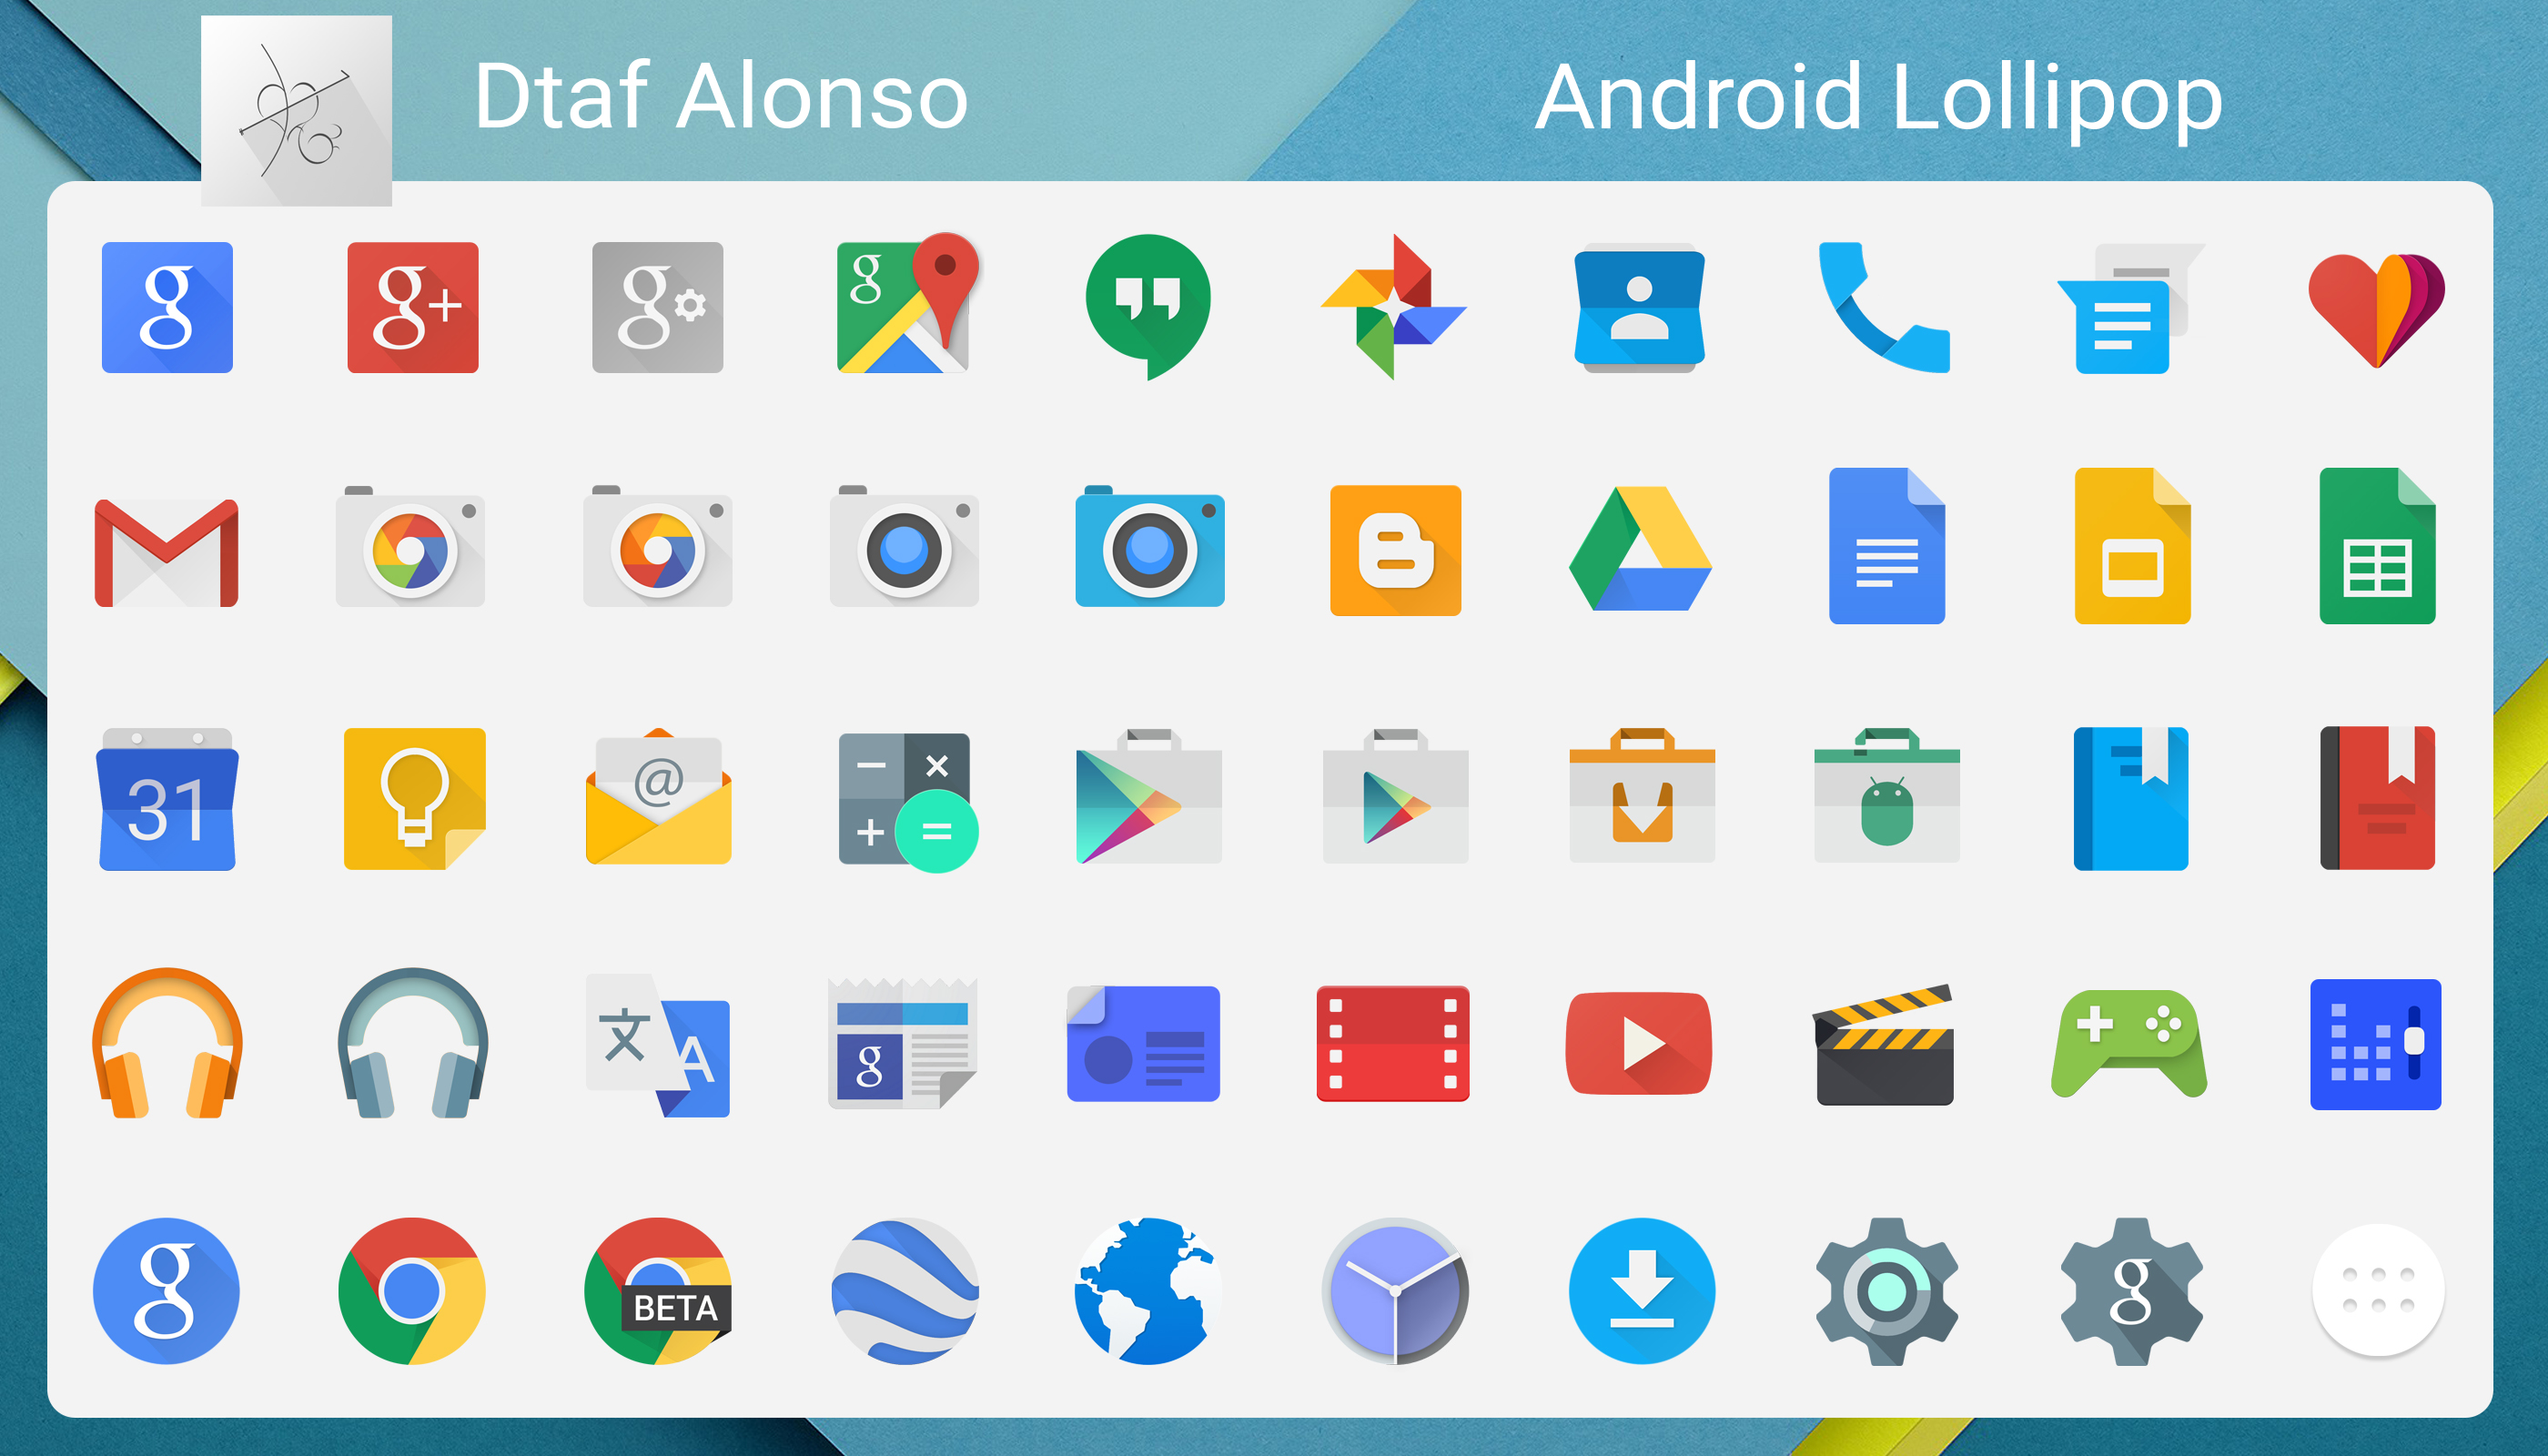 12 Android Lollipop Icons Vector Images